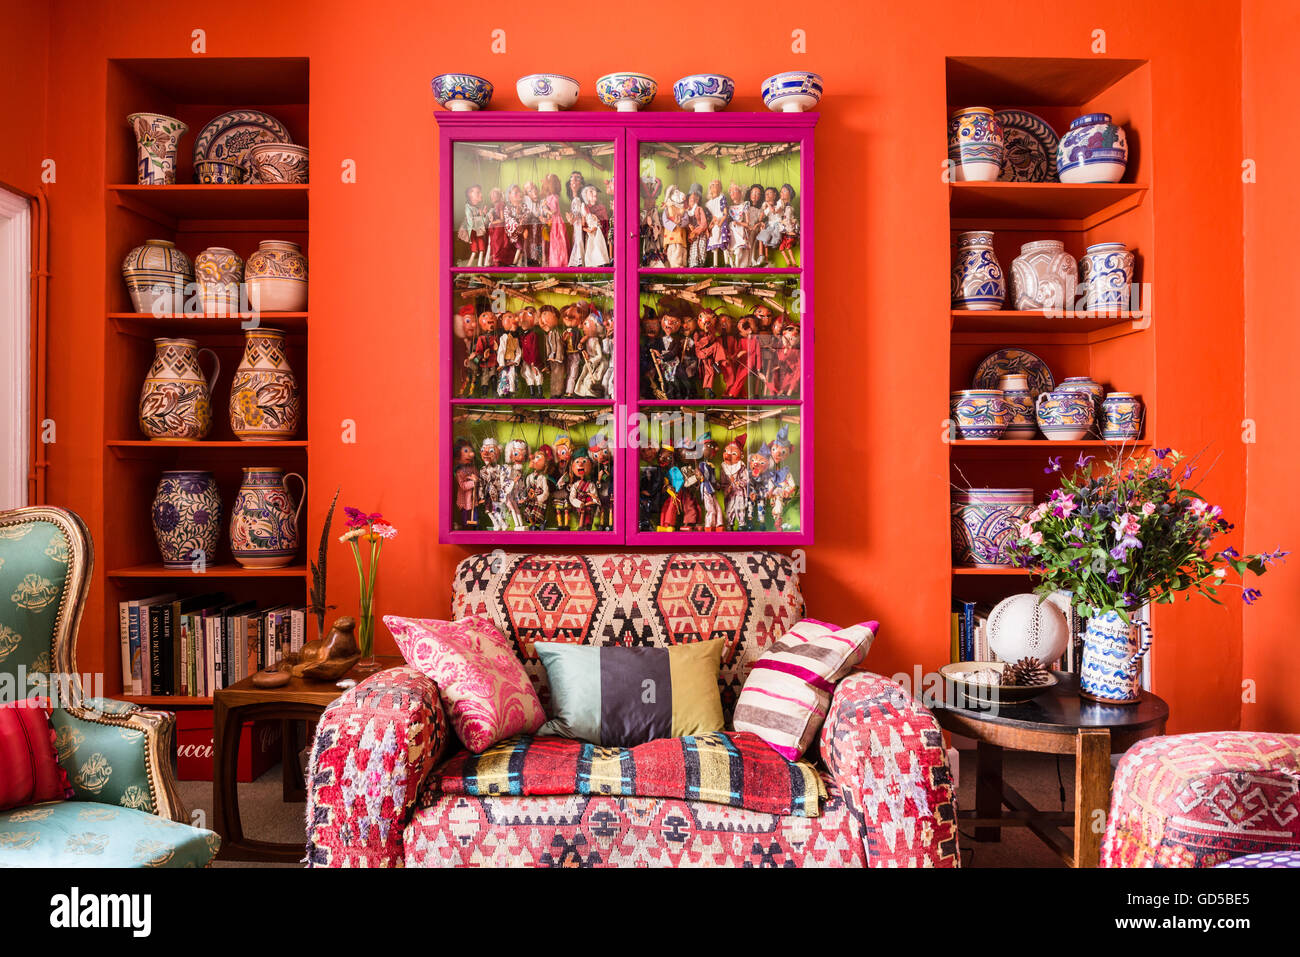 Club sofa upholstered in kilim material beneath glass-fronted pink cabinet containing collection of marionette puppets. - Stock Image